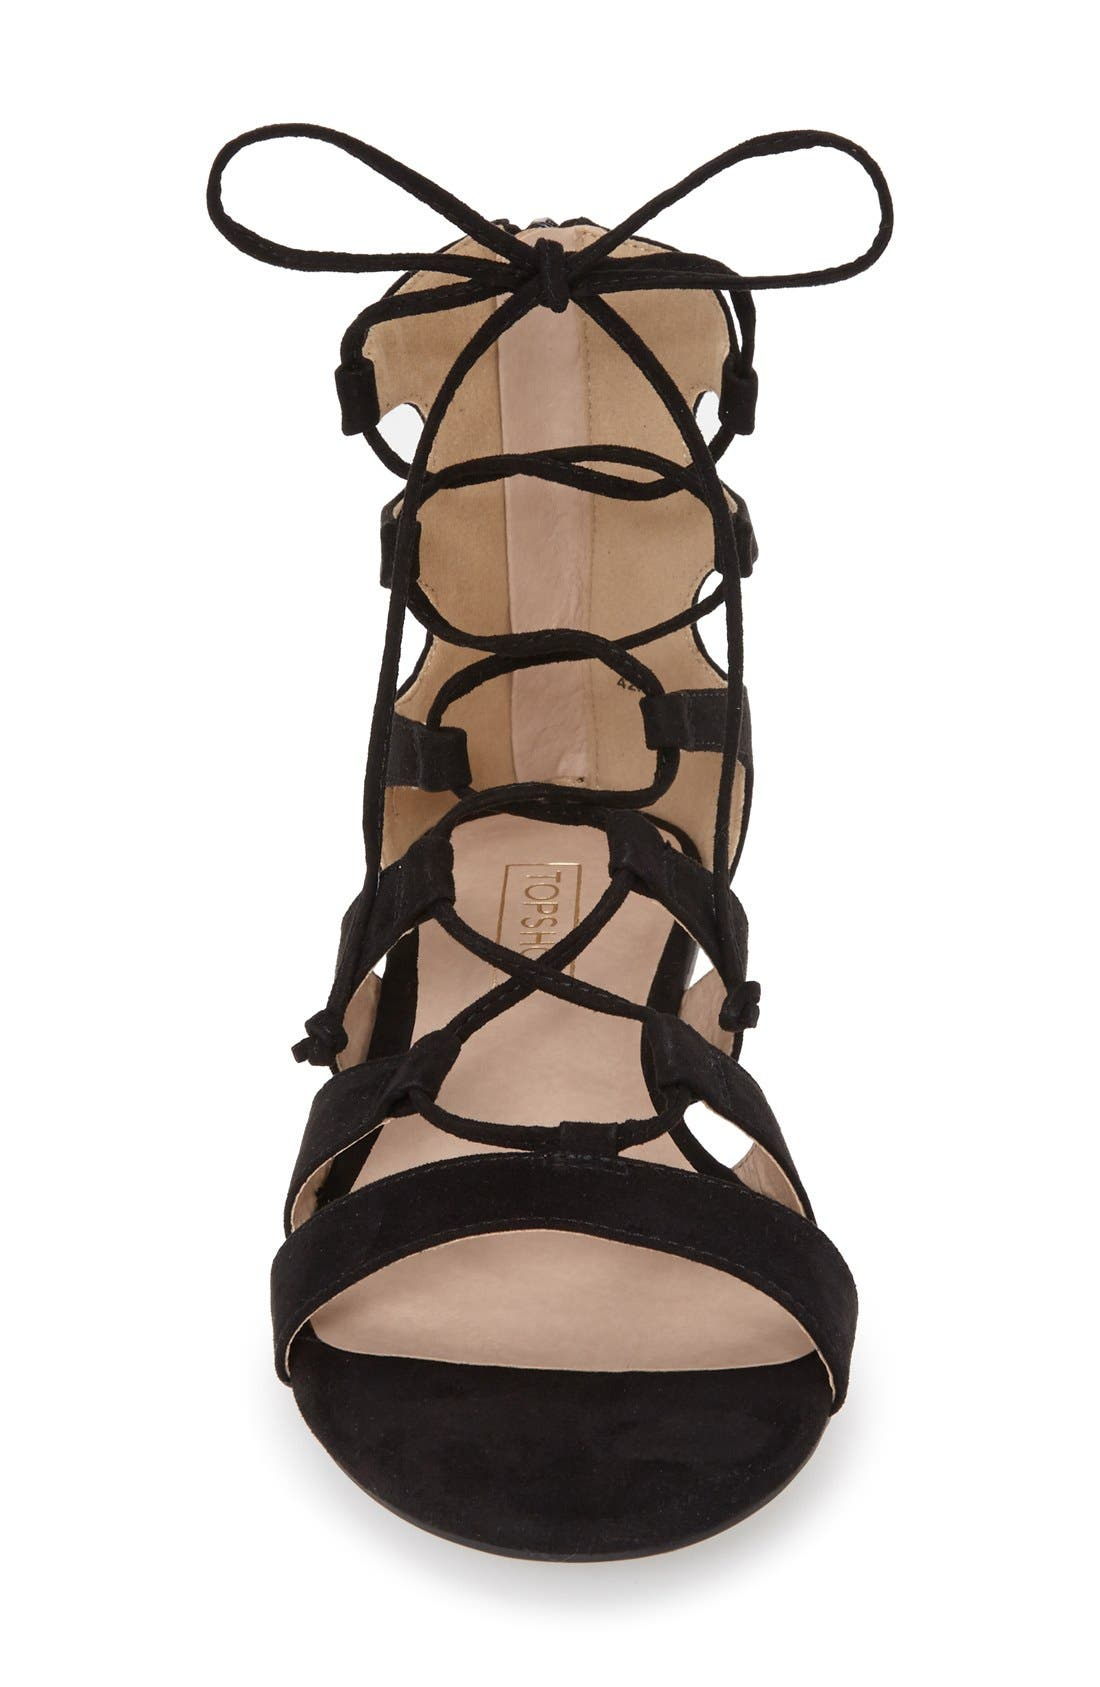 TOPSHOP, Lace-Up Gladiator Sandal, Alternate thumbnail 4, color, 001